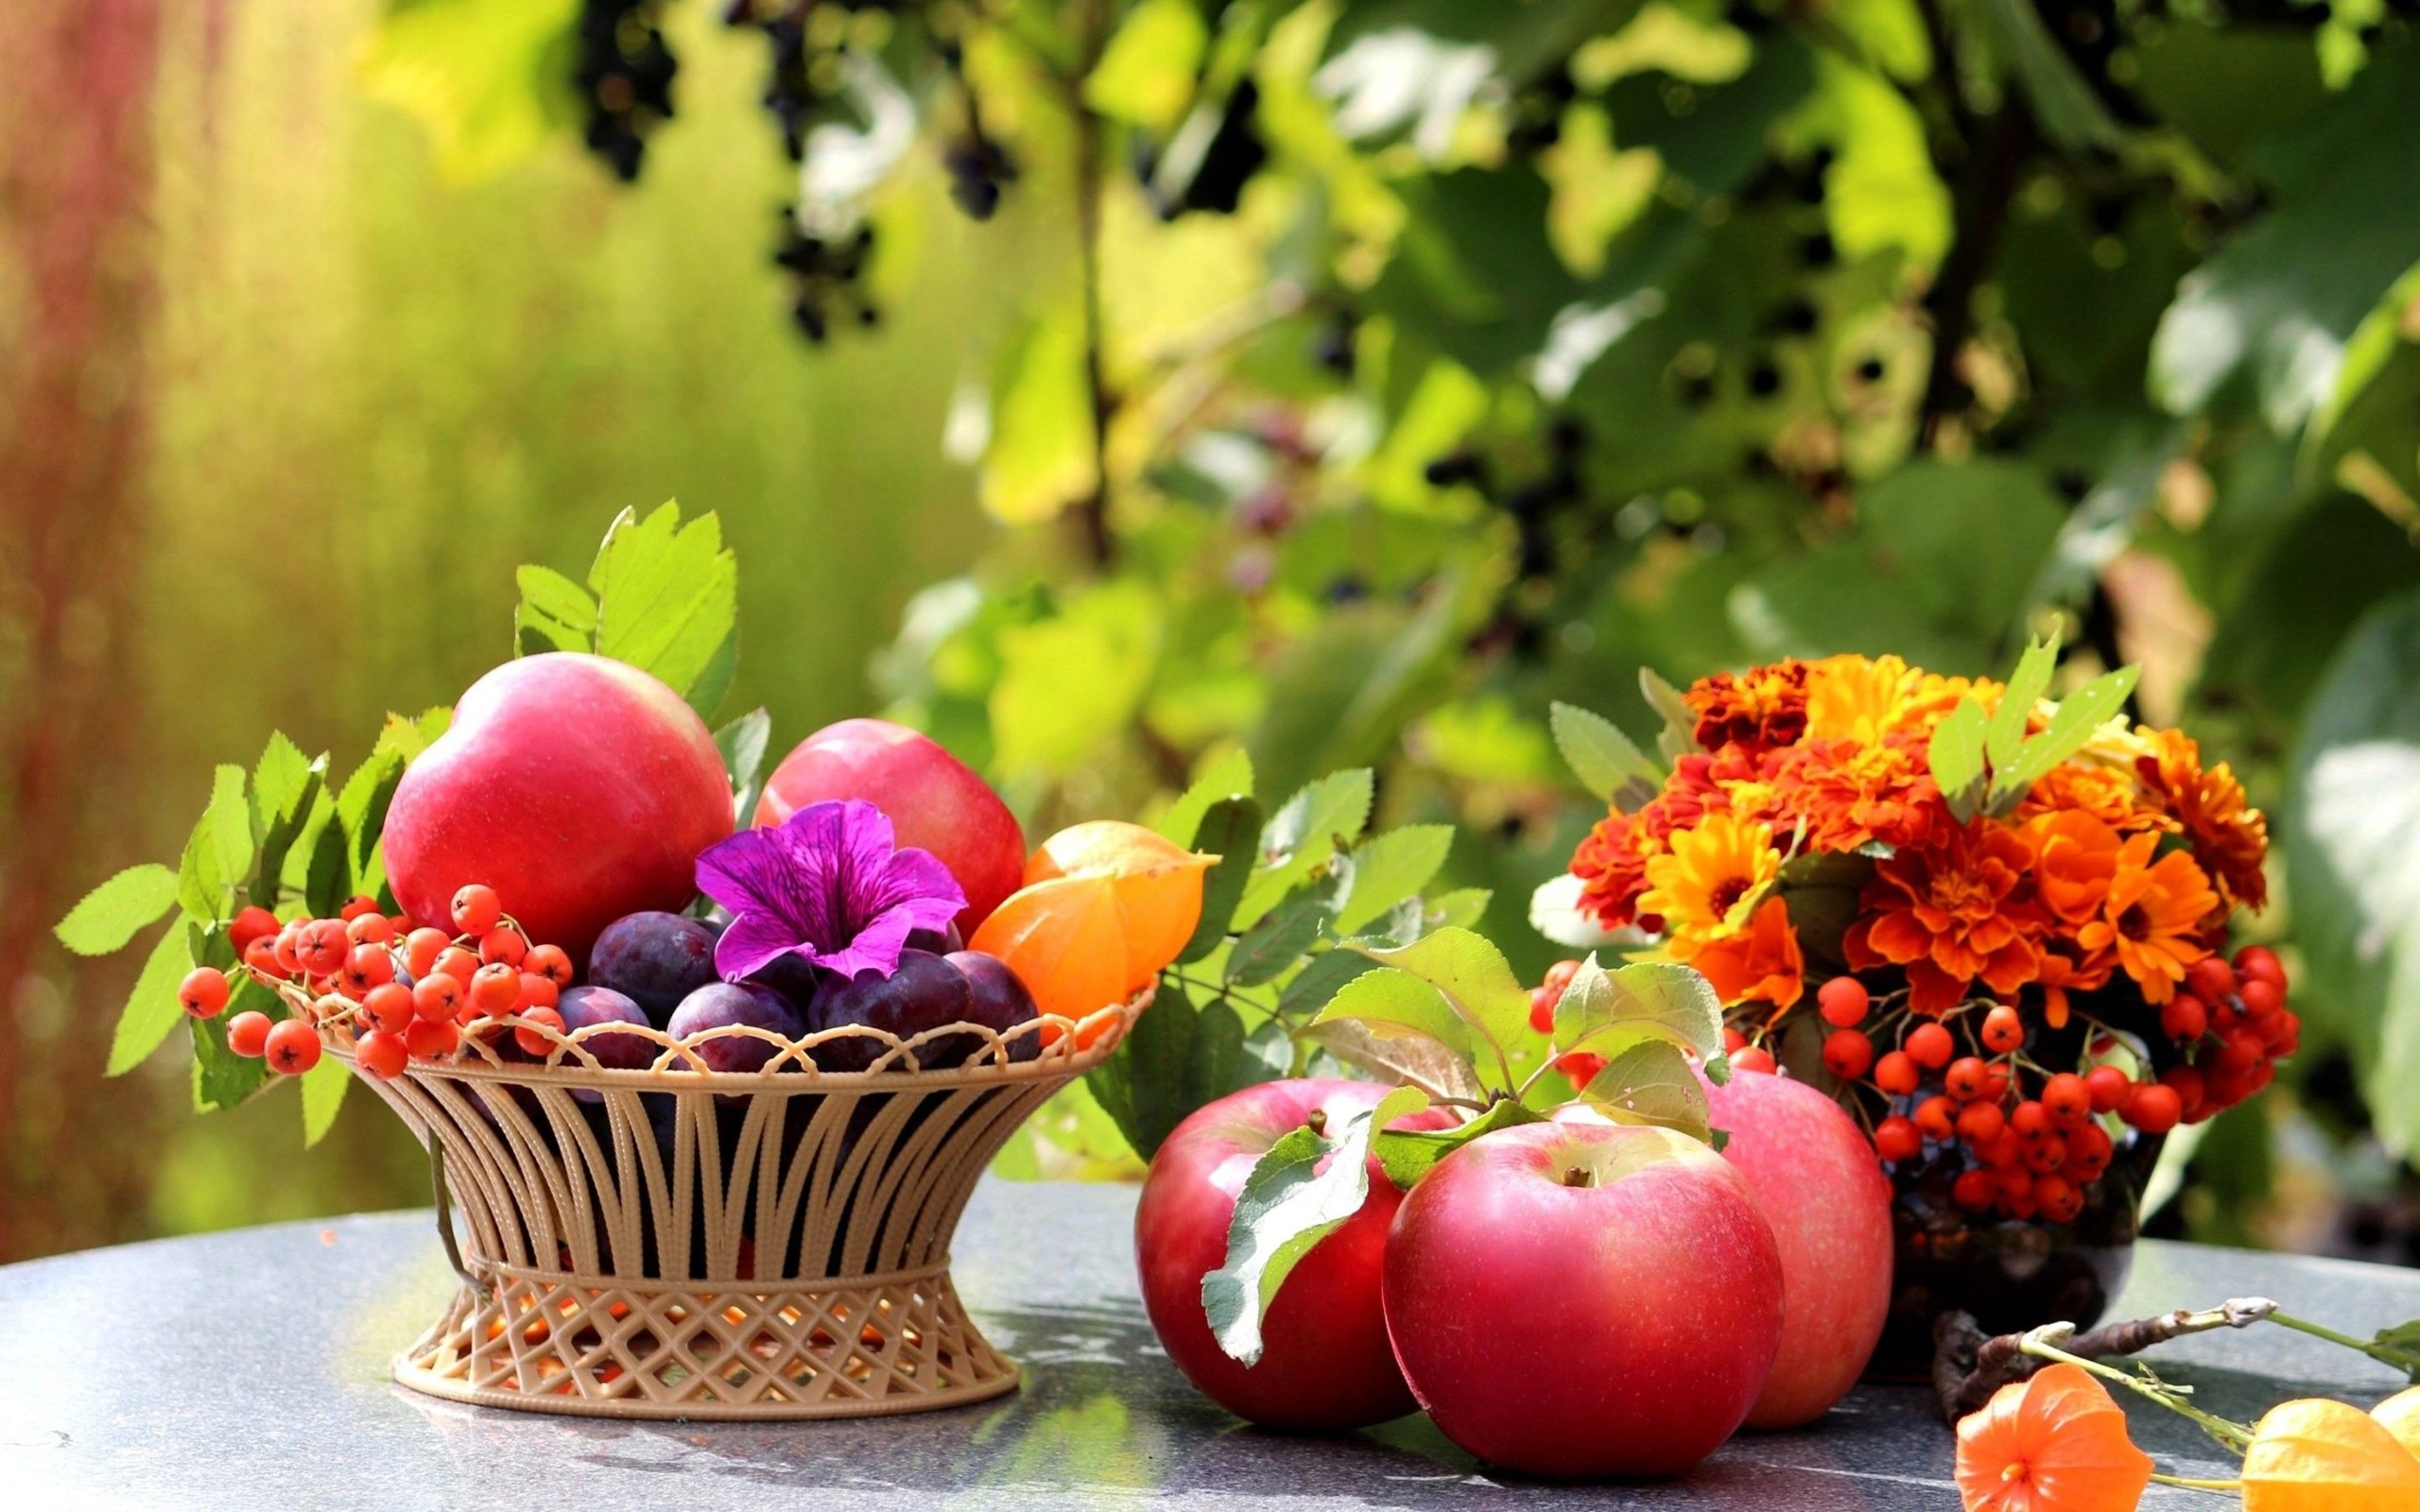 fruits images hd free download